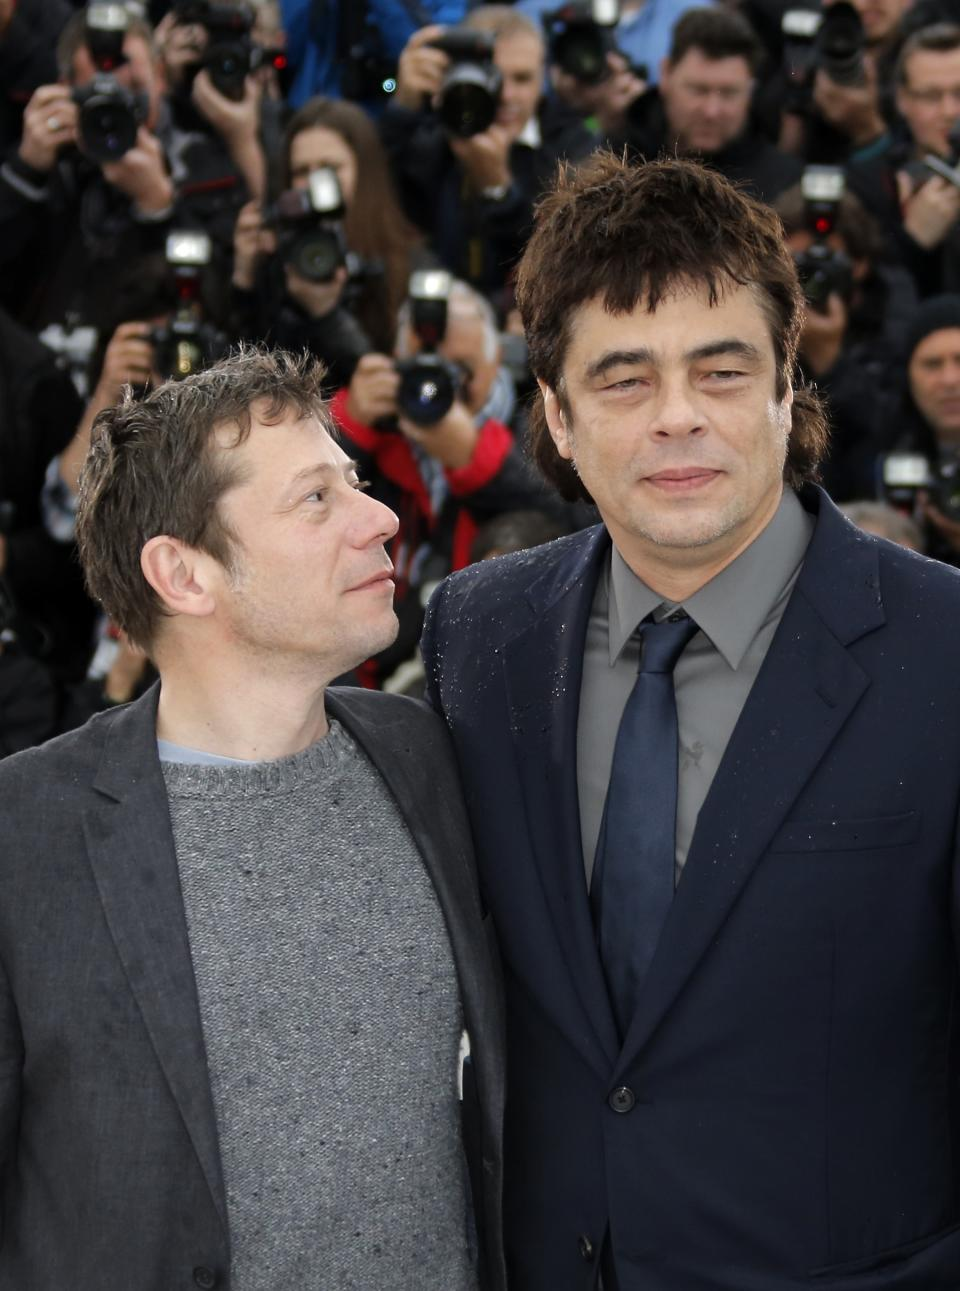 Actors Mathieu Amalric, left, and Benicio Del Toro pose for photographers during a photo call for the film Jimmy P. Psychotheraphy of a Plains Indian at the 66th international film festival, in Cannes, southern France, Saturday, May 18, 2013. (AP Photo/Francois Mori)